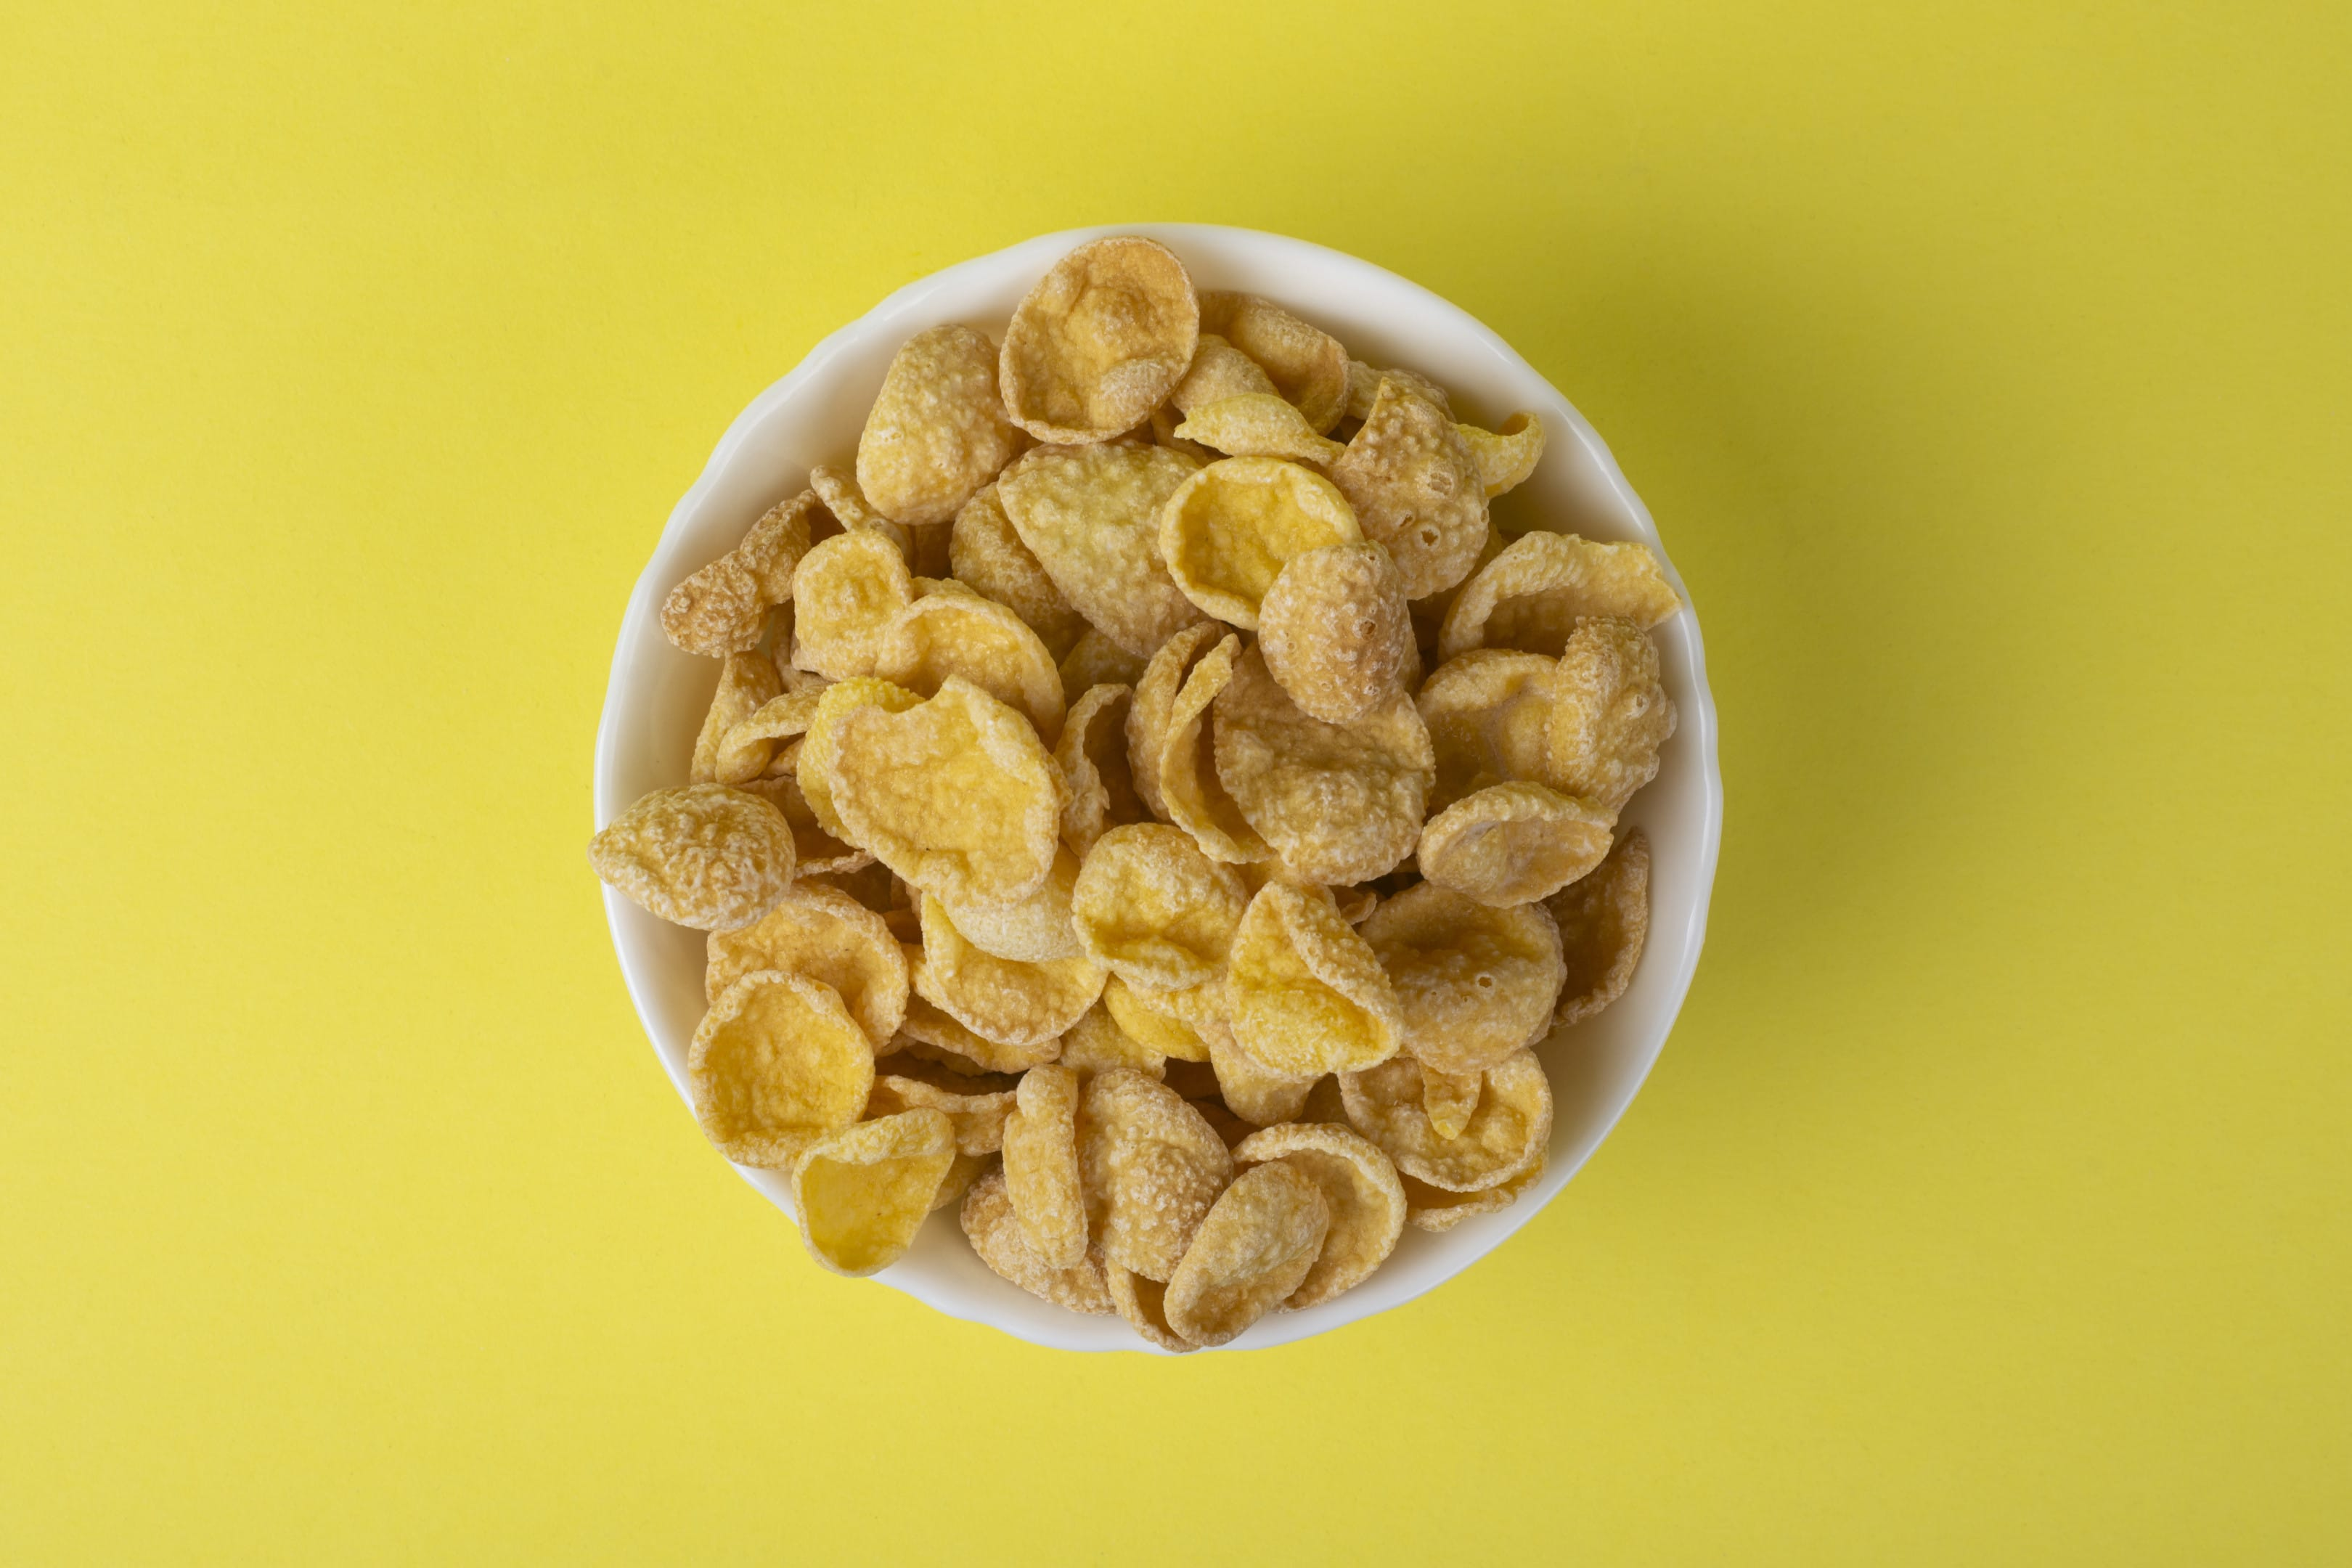 Bowl of Cornflakes on Yellow Table